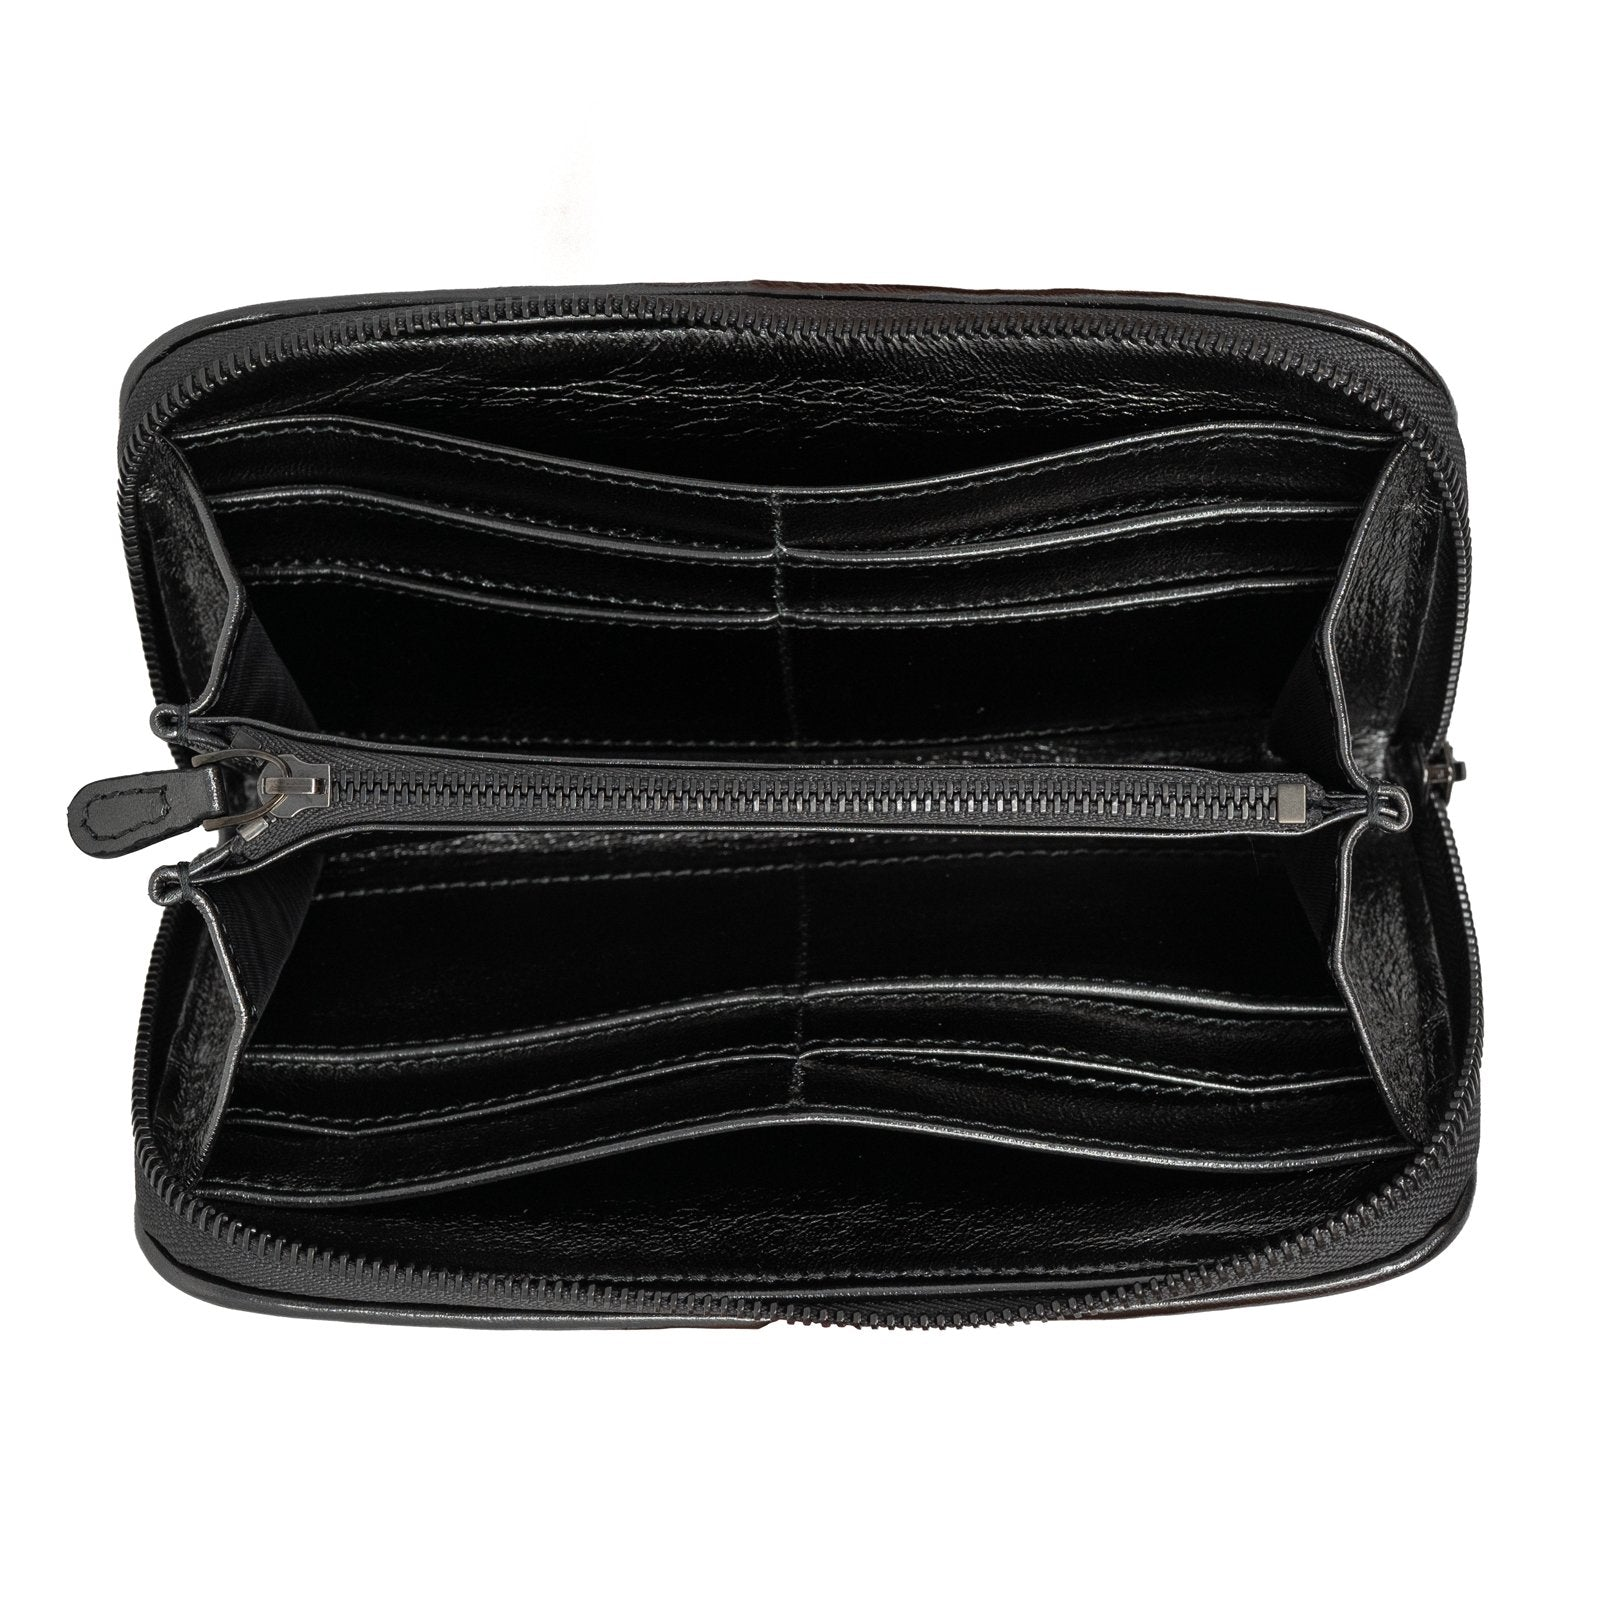 Women Intrecciato Scozzese Leather Zippered Wallet in Gun Metal - Jennifer Tattanelli